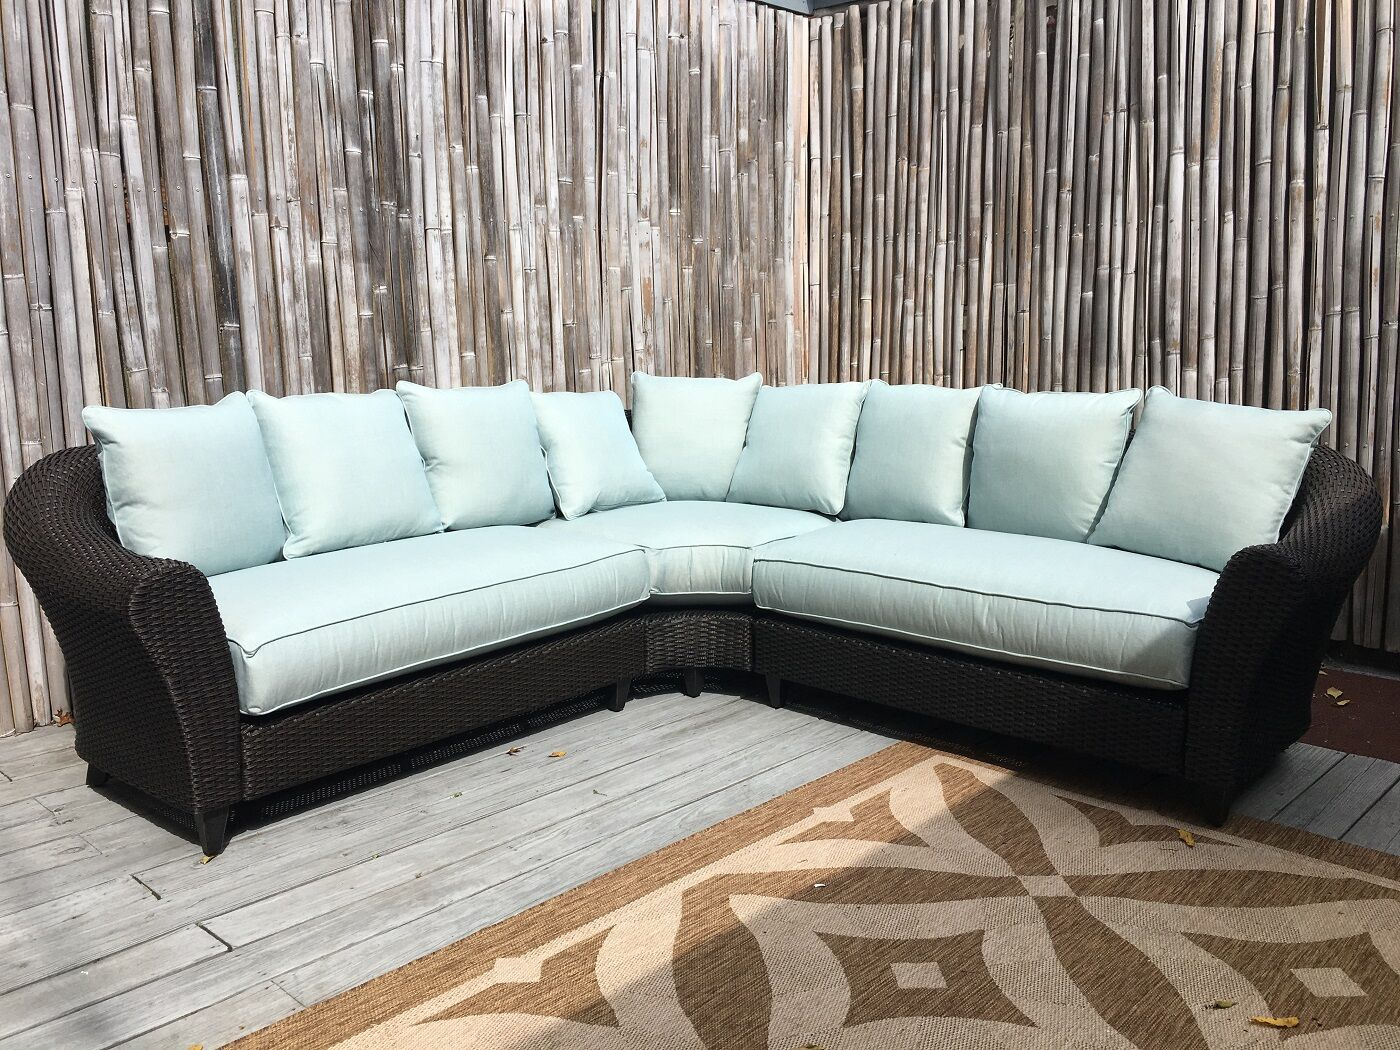 Vickey Outdoor Patio Sectional with Cushions Color: Mist